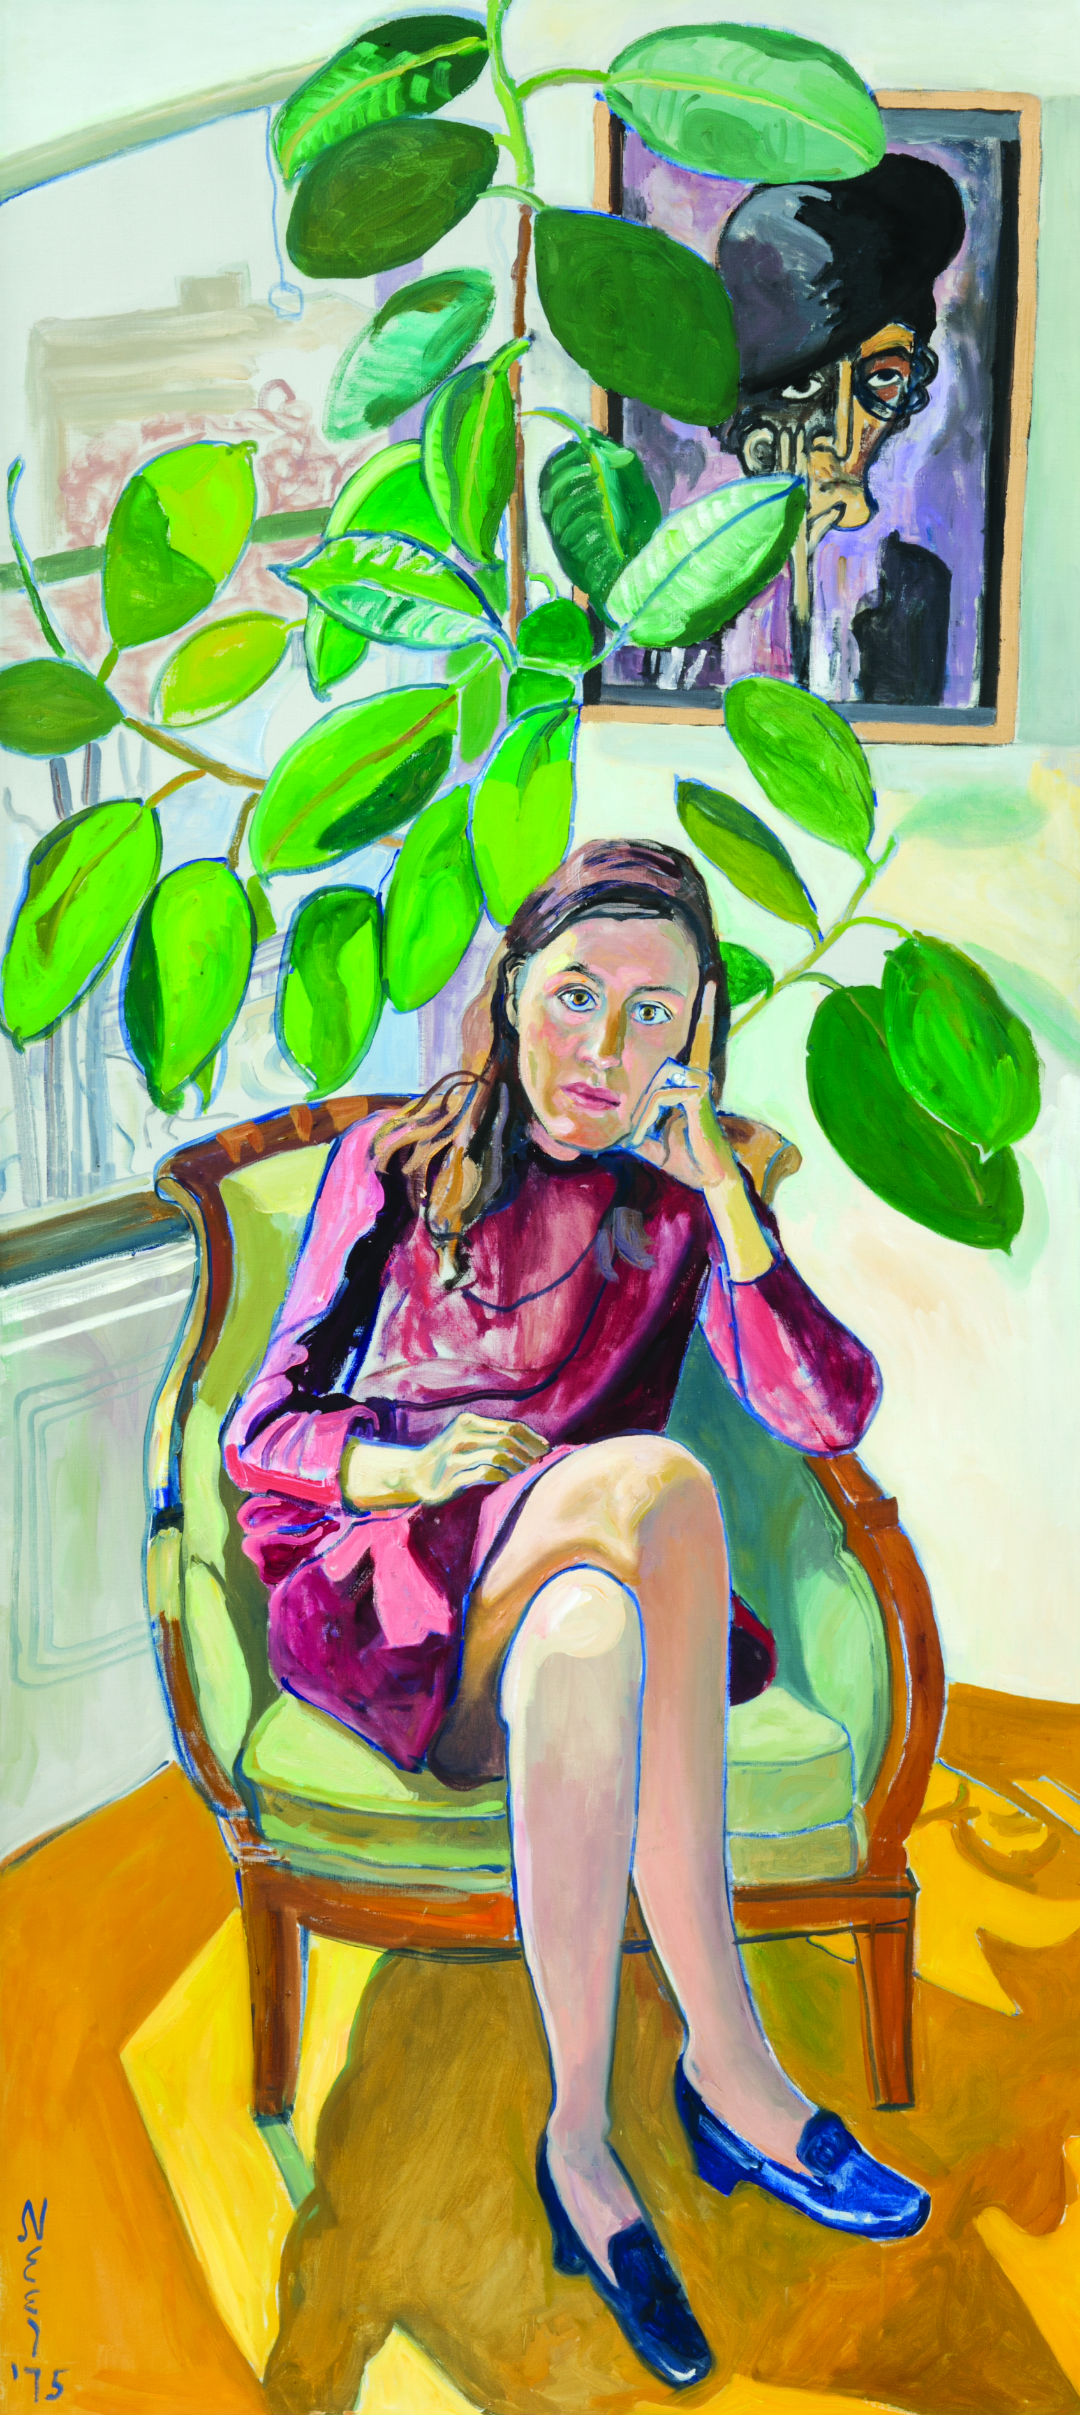 Alice Neel (American, 1900–1984), Nancy and the Rubber Plant. Oil on canvas, 1975. 80 x 36 in. Purchased with funds from the Libbey Endowment, Toledo Museum of Art, 2016.8. Gallery 4